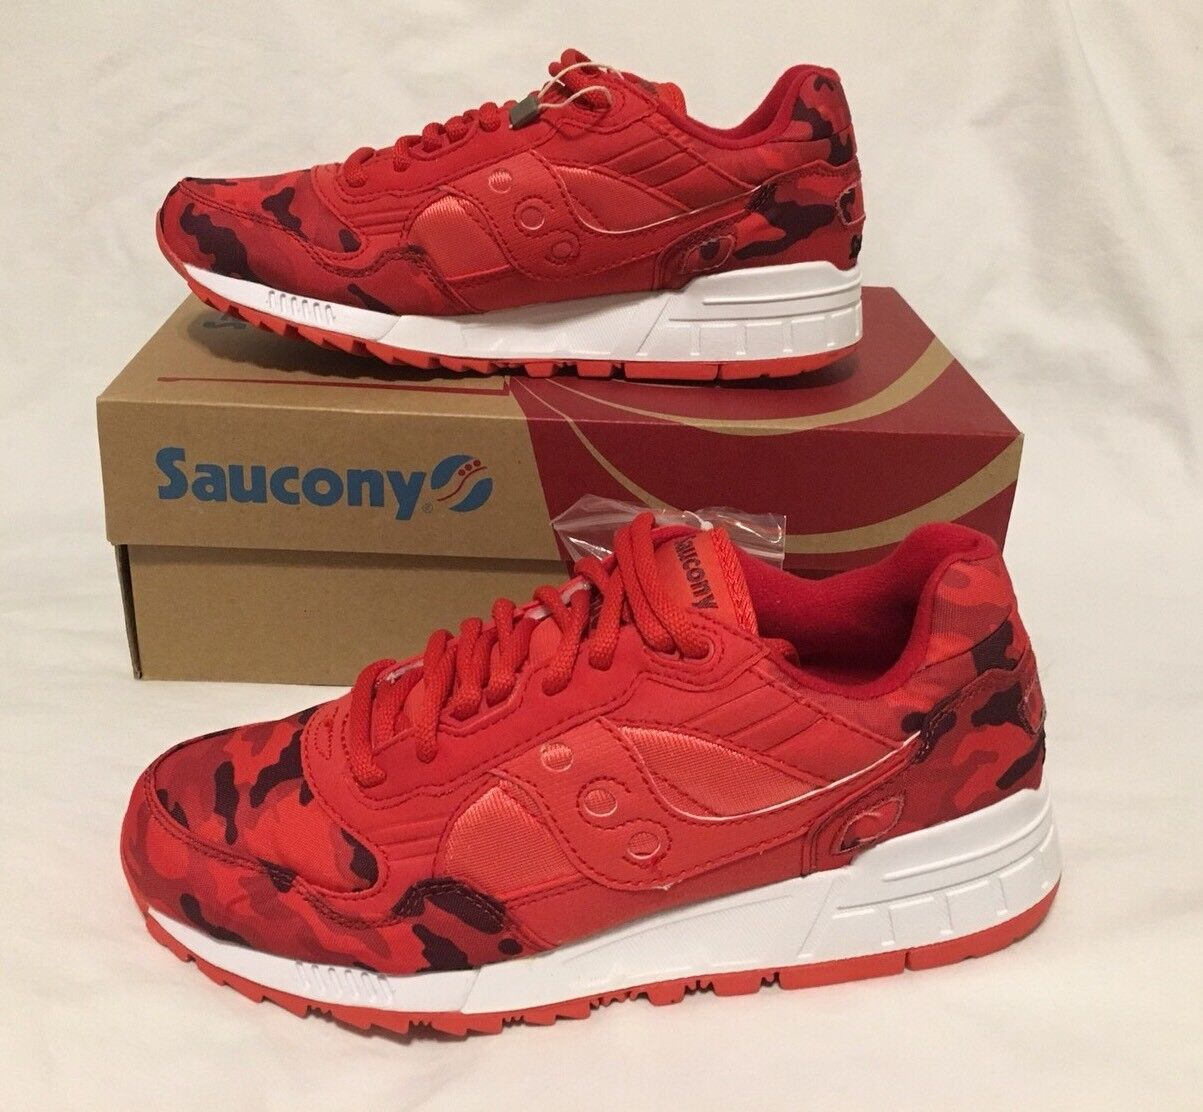 SAUCONY SHADOW 5000 Trainer rot     Camouflage S70255-3 BNIB Uk6 Eu 40 Us7 fa780c